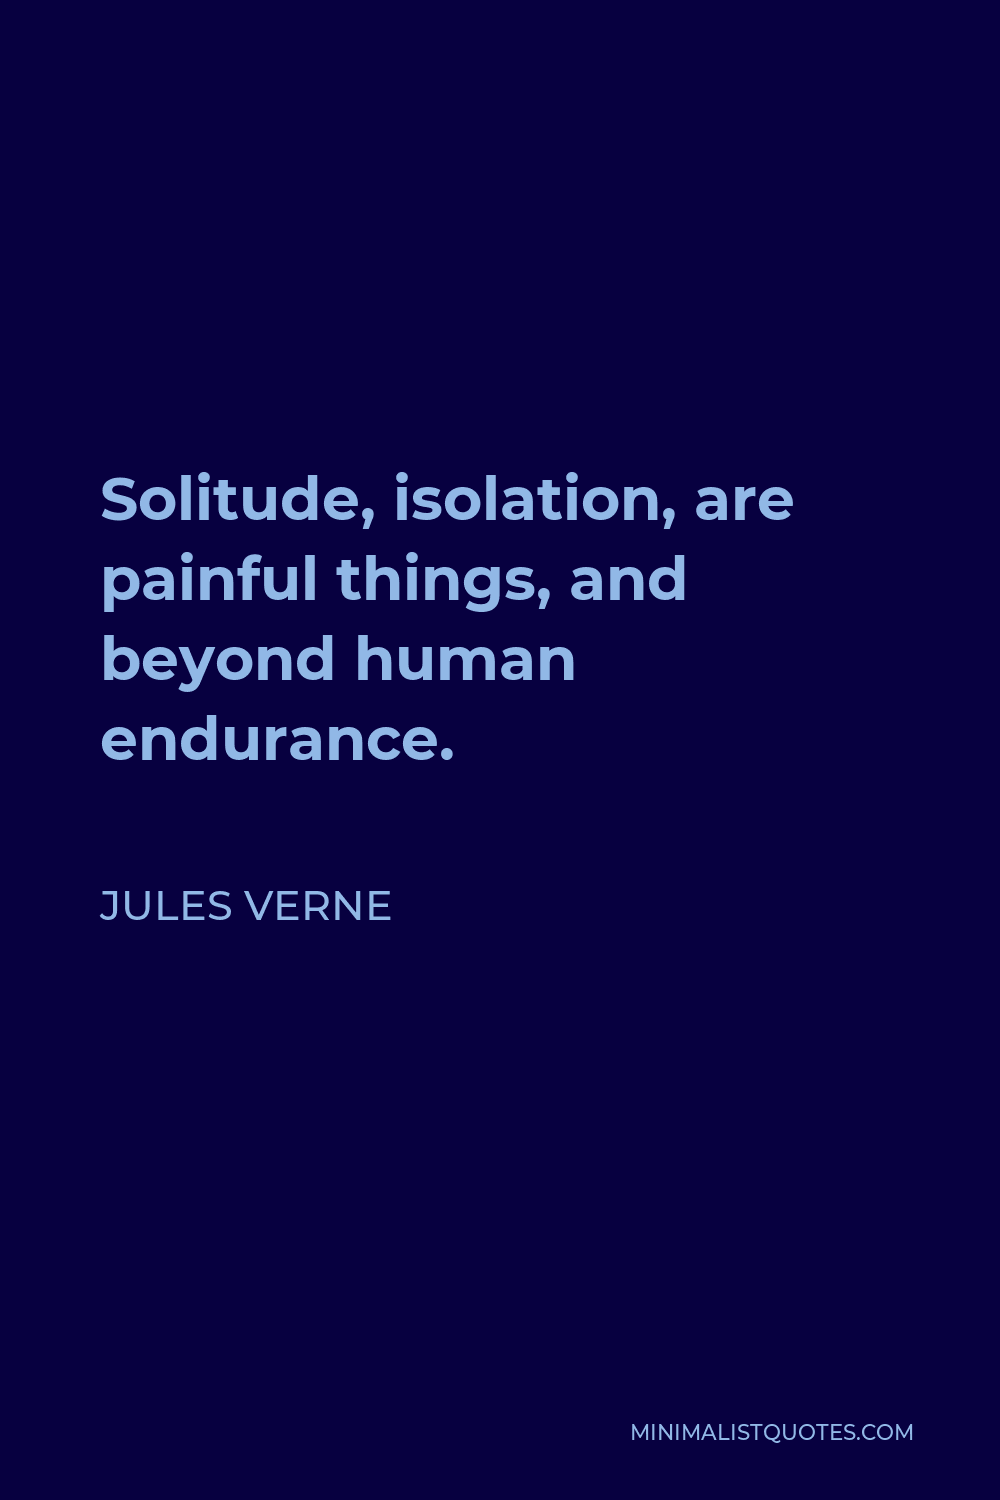 Jules Verne Quote - Solitude, isolation, are painful things, and beyond human endurance.